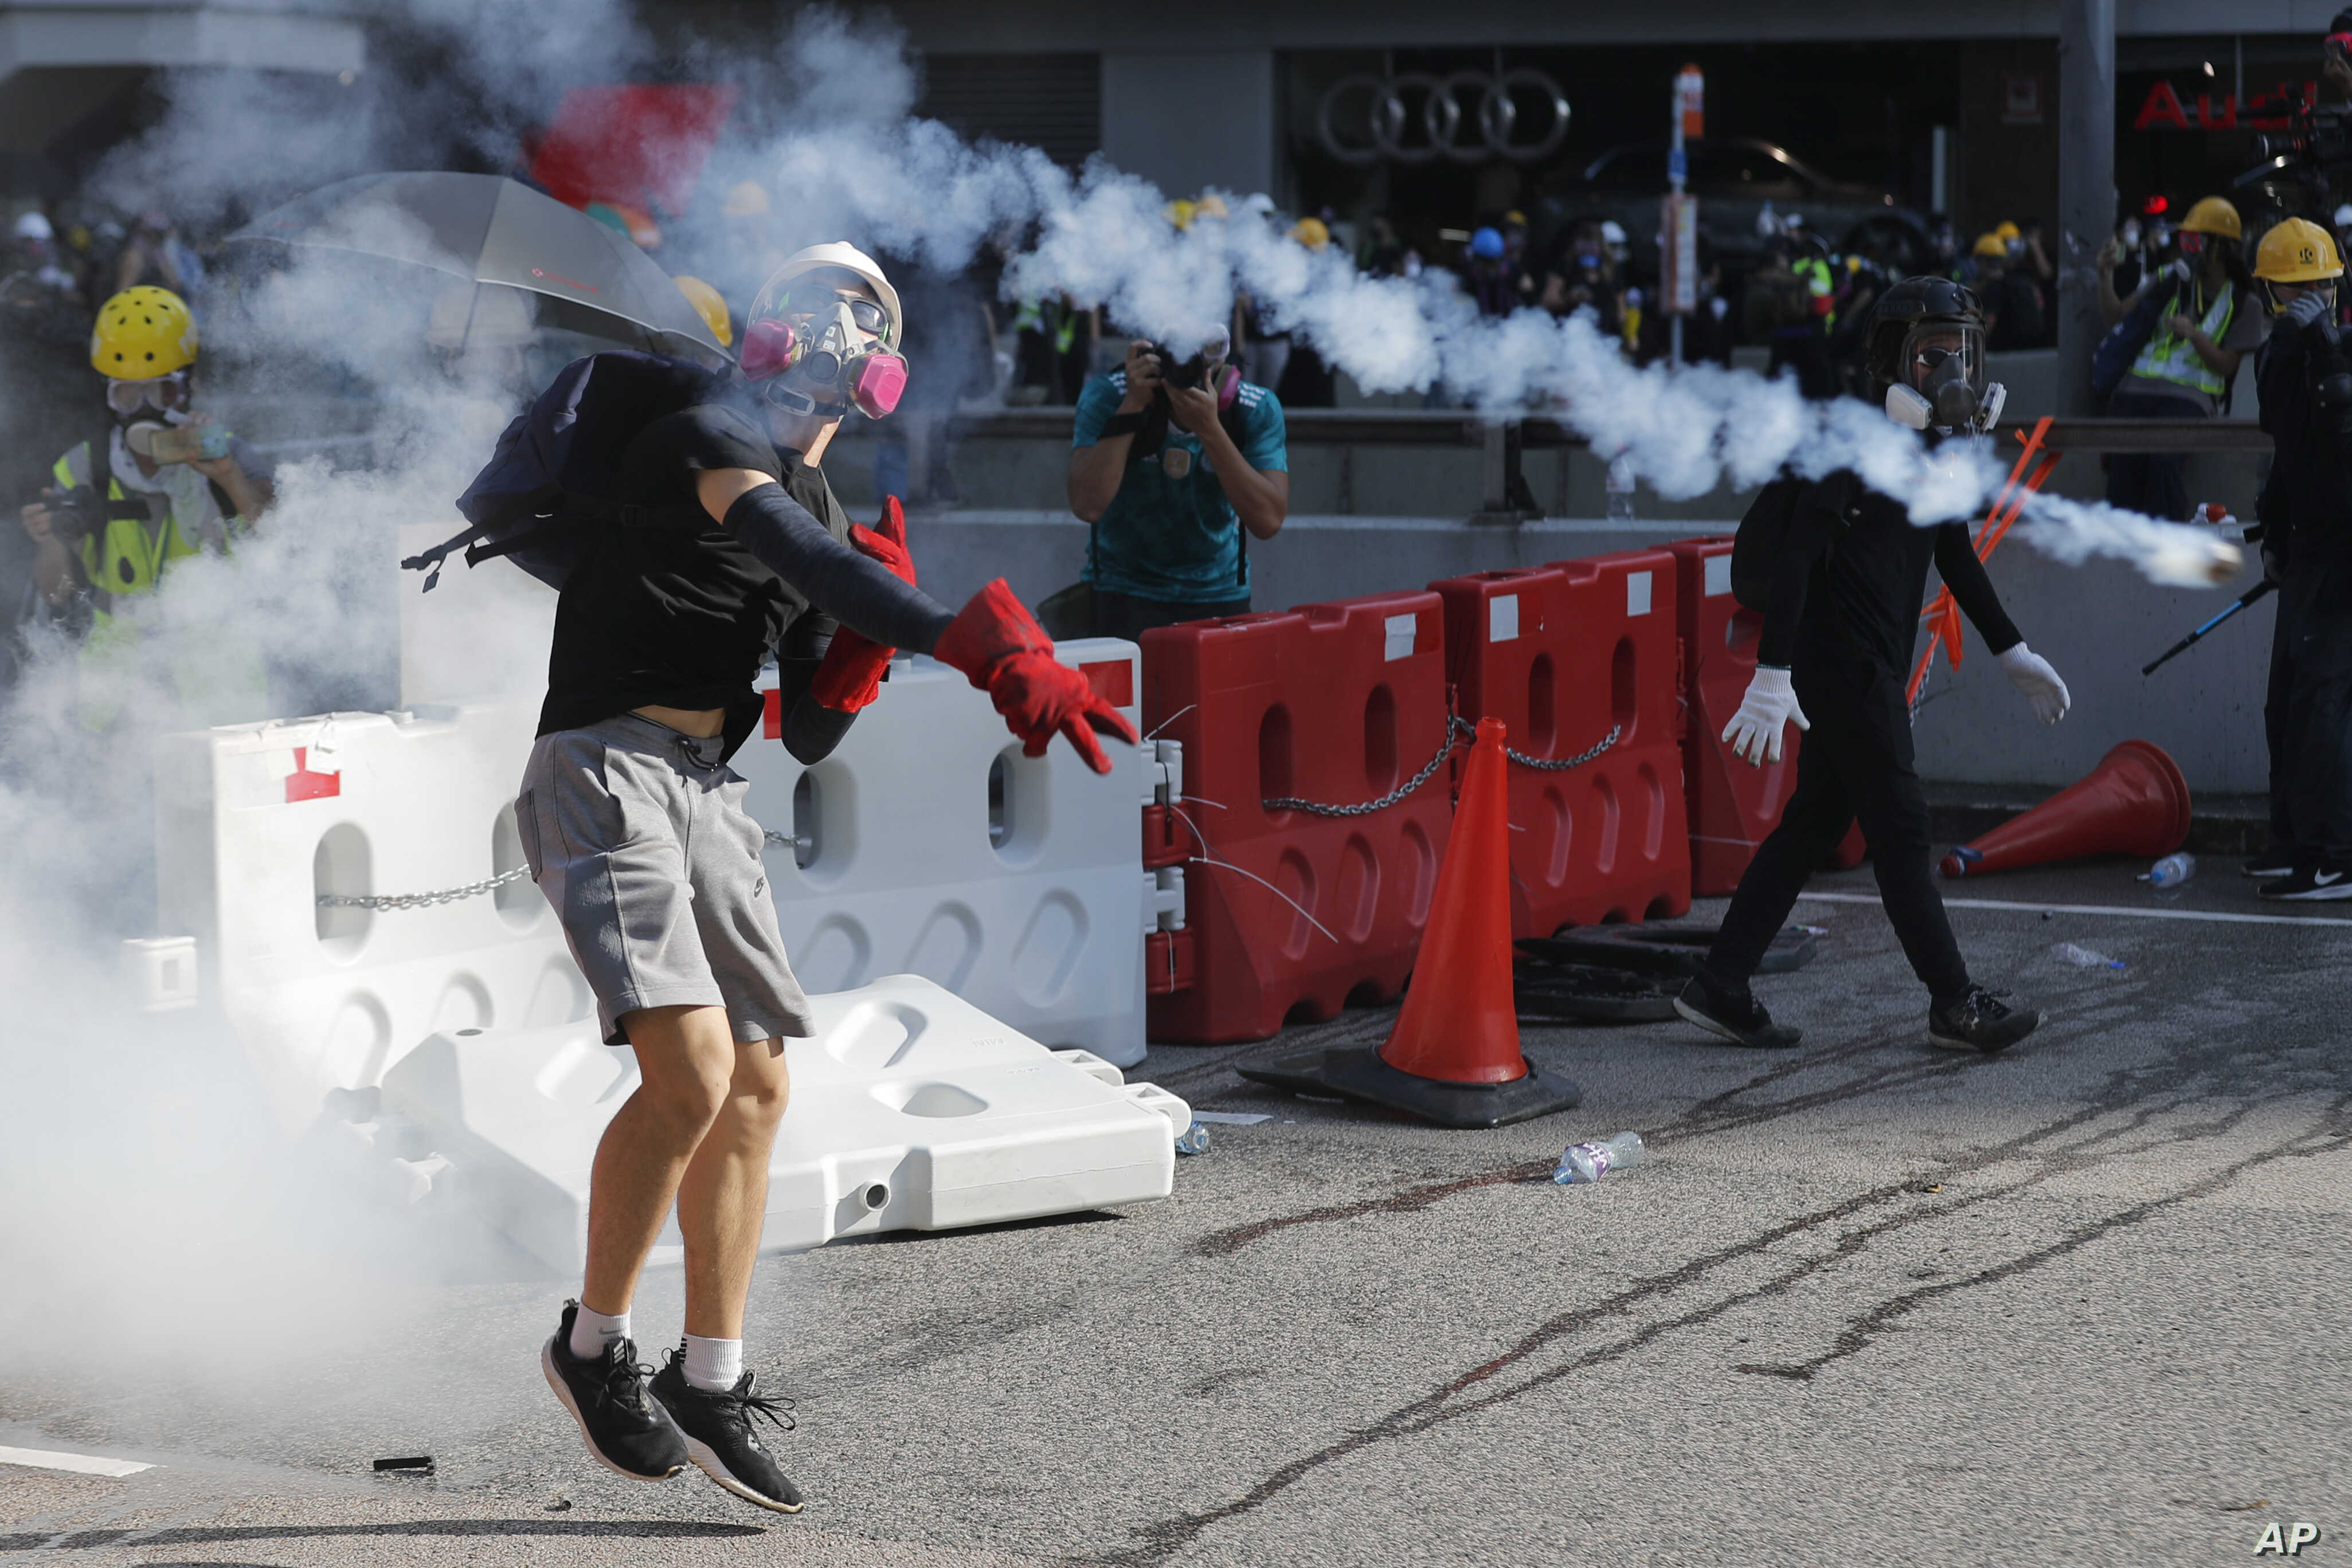 FILE - A protester throws back a tear gas canister during demonstrations in Hong Kong, Aug. 5, 2019.